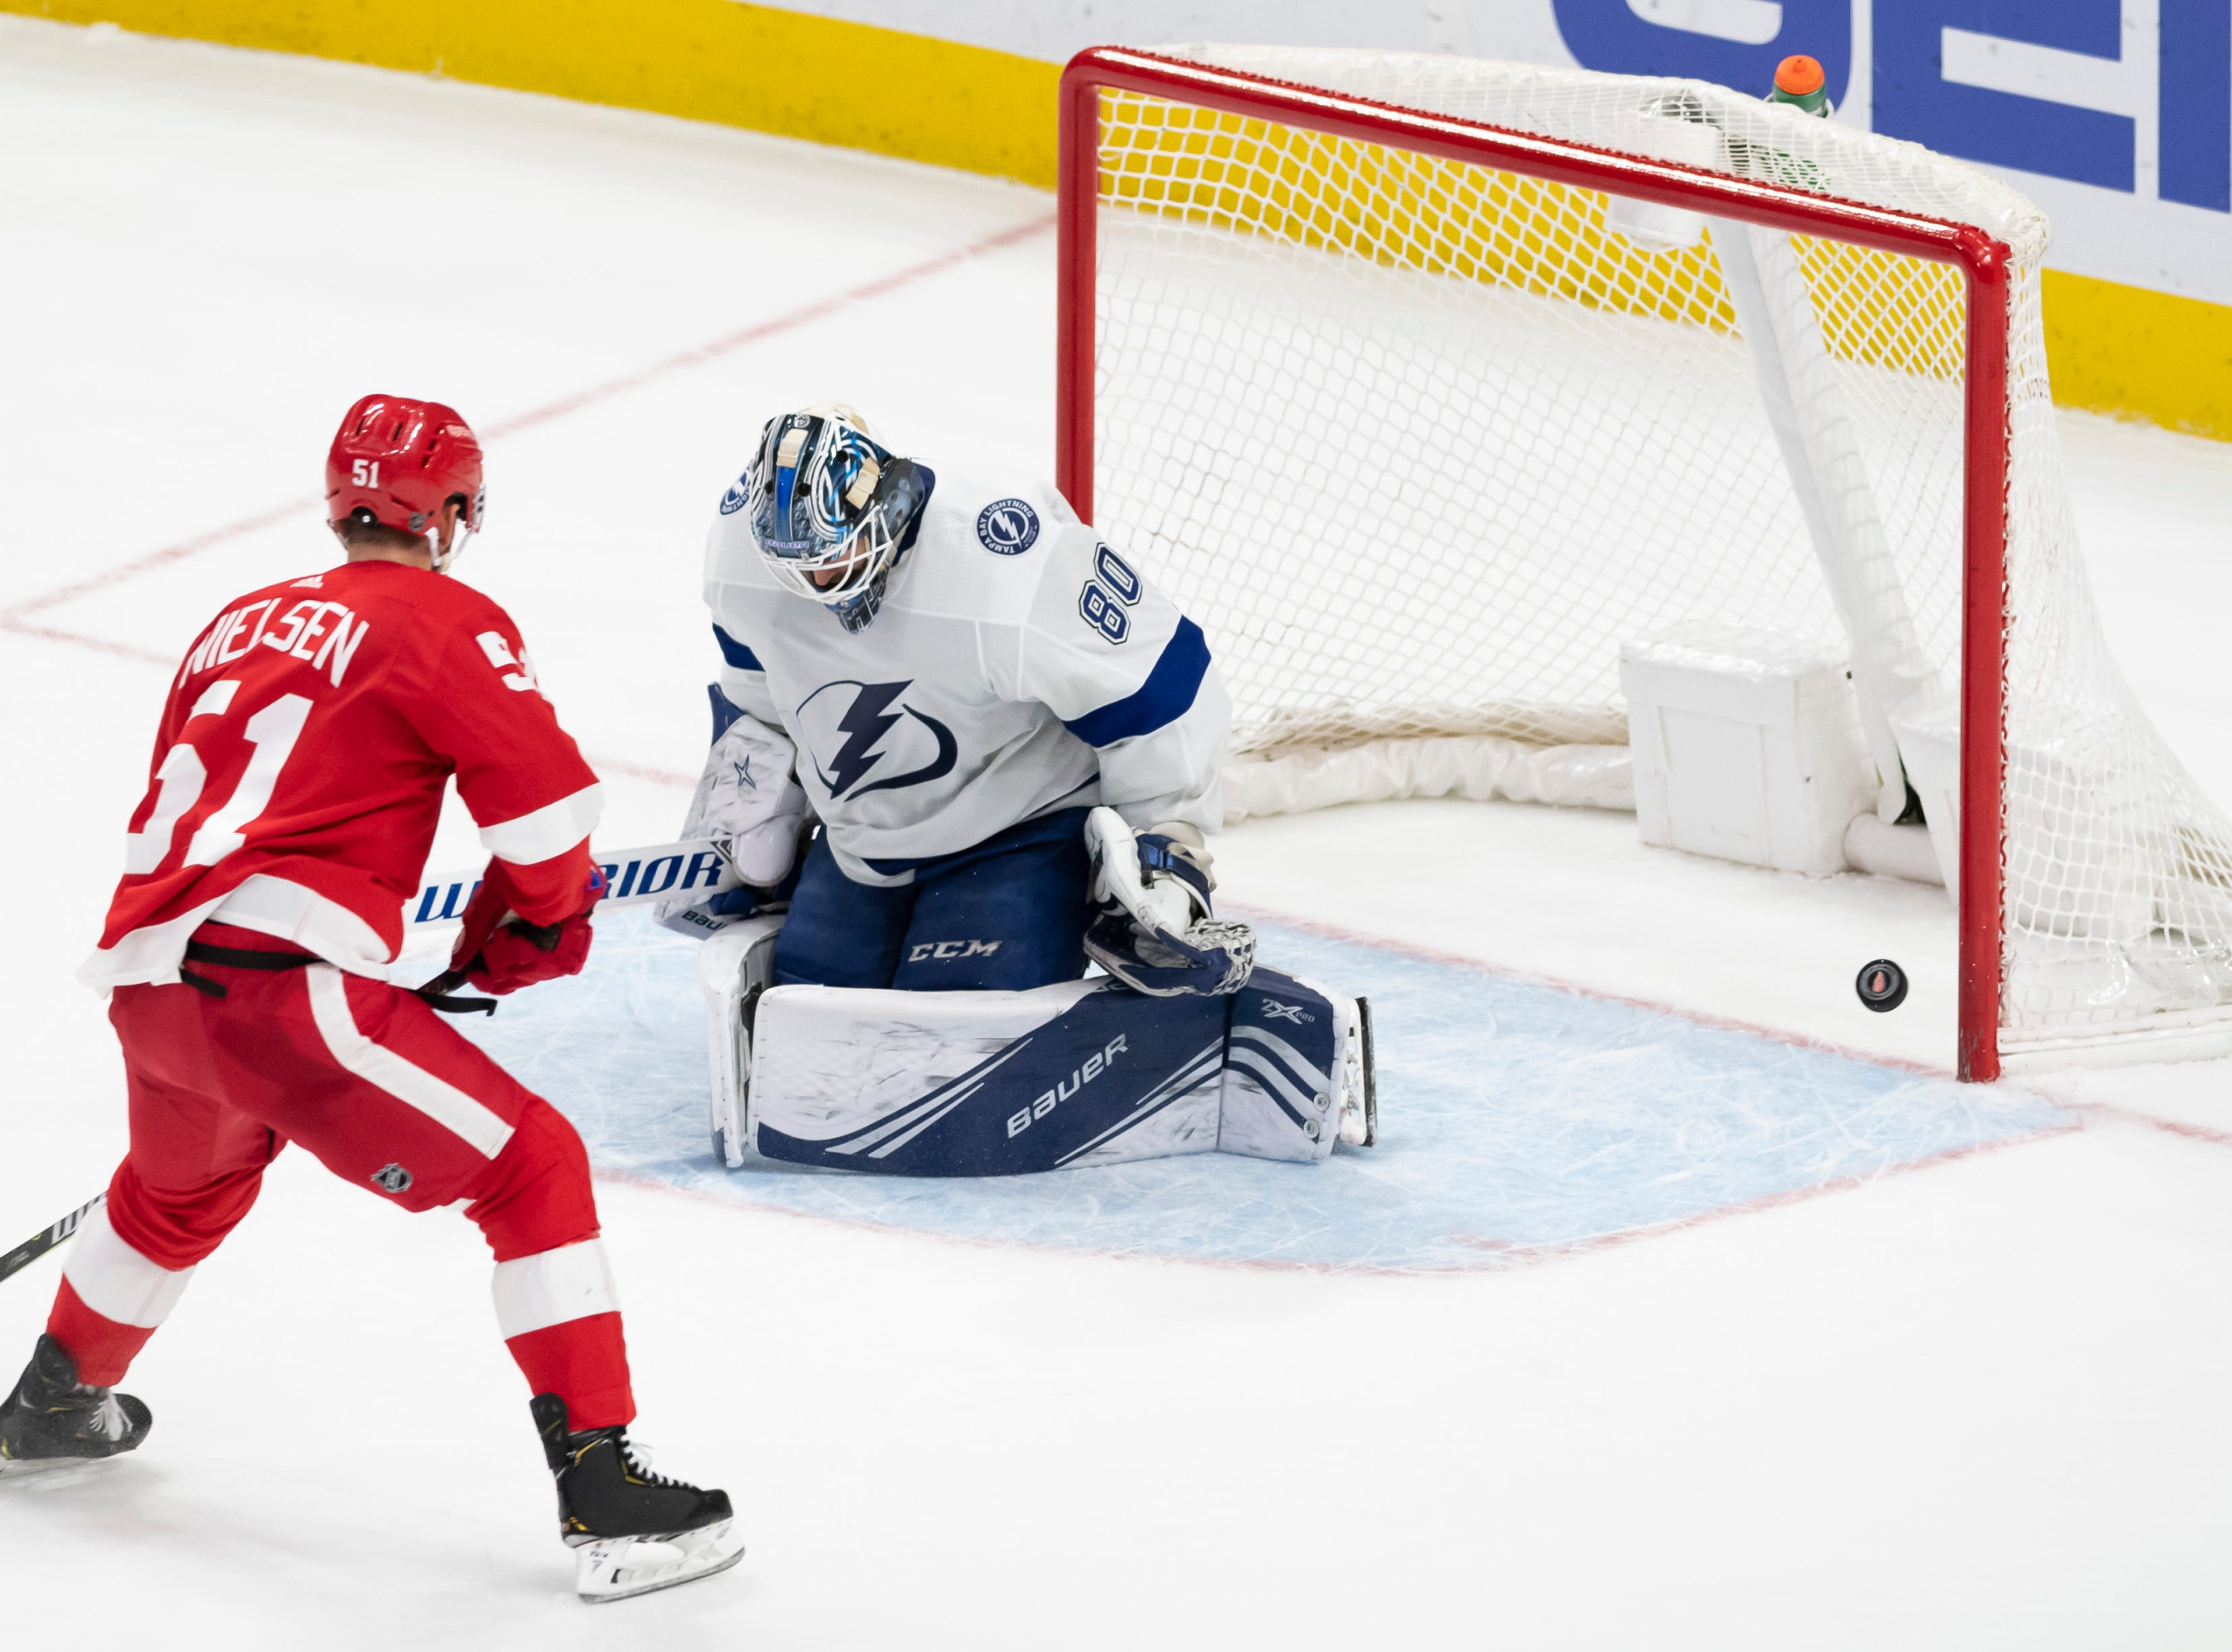 Detroit center Frans Nielsen fails to get the puck past Tampa Bay goaltender Edward Pasquale during the shoot out.